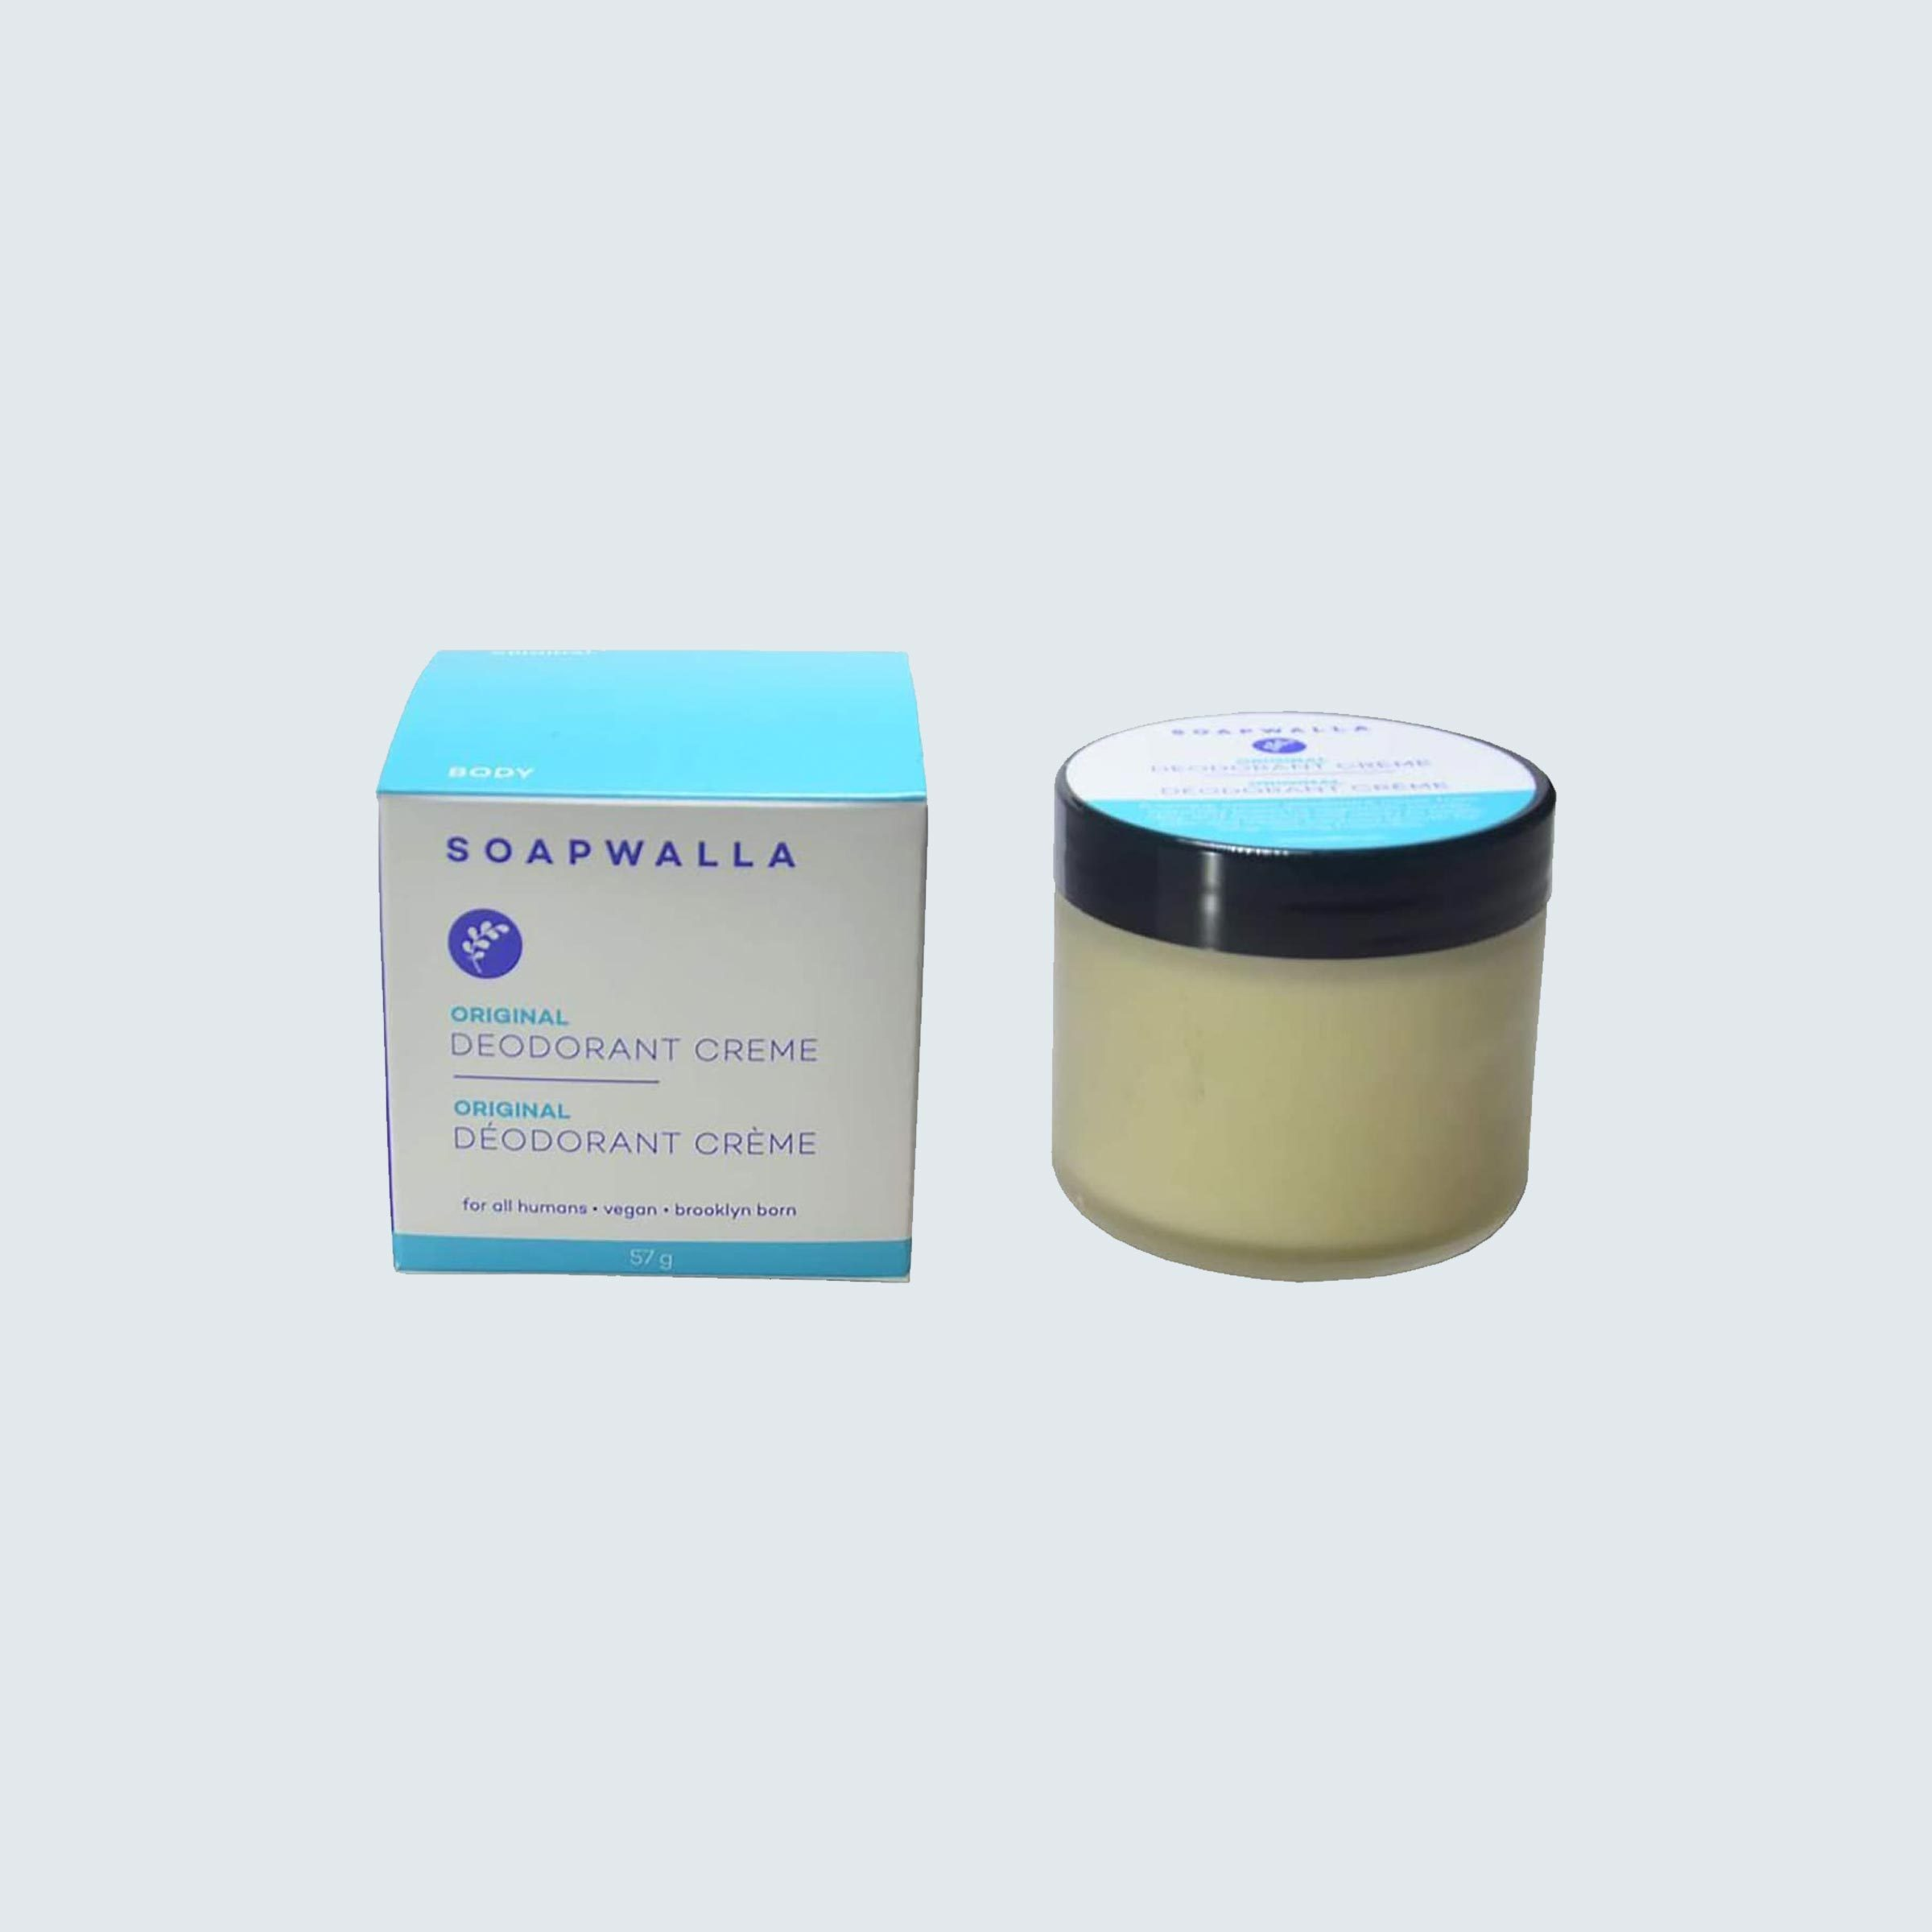 Soapwalla skincare products